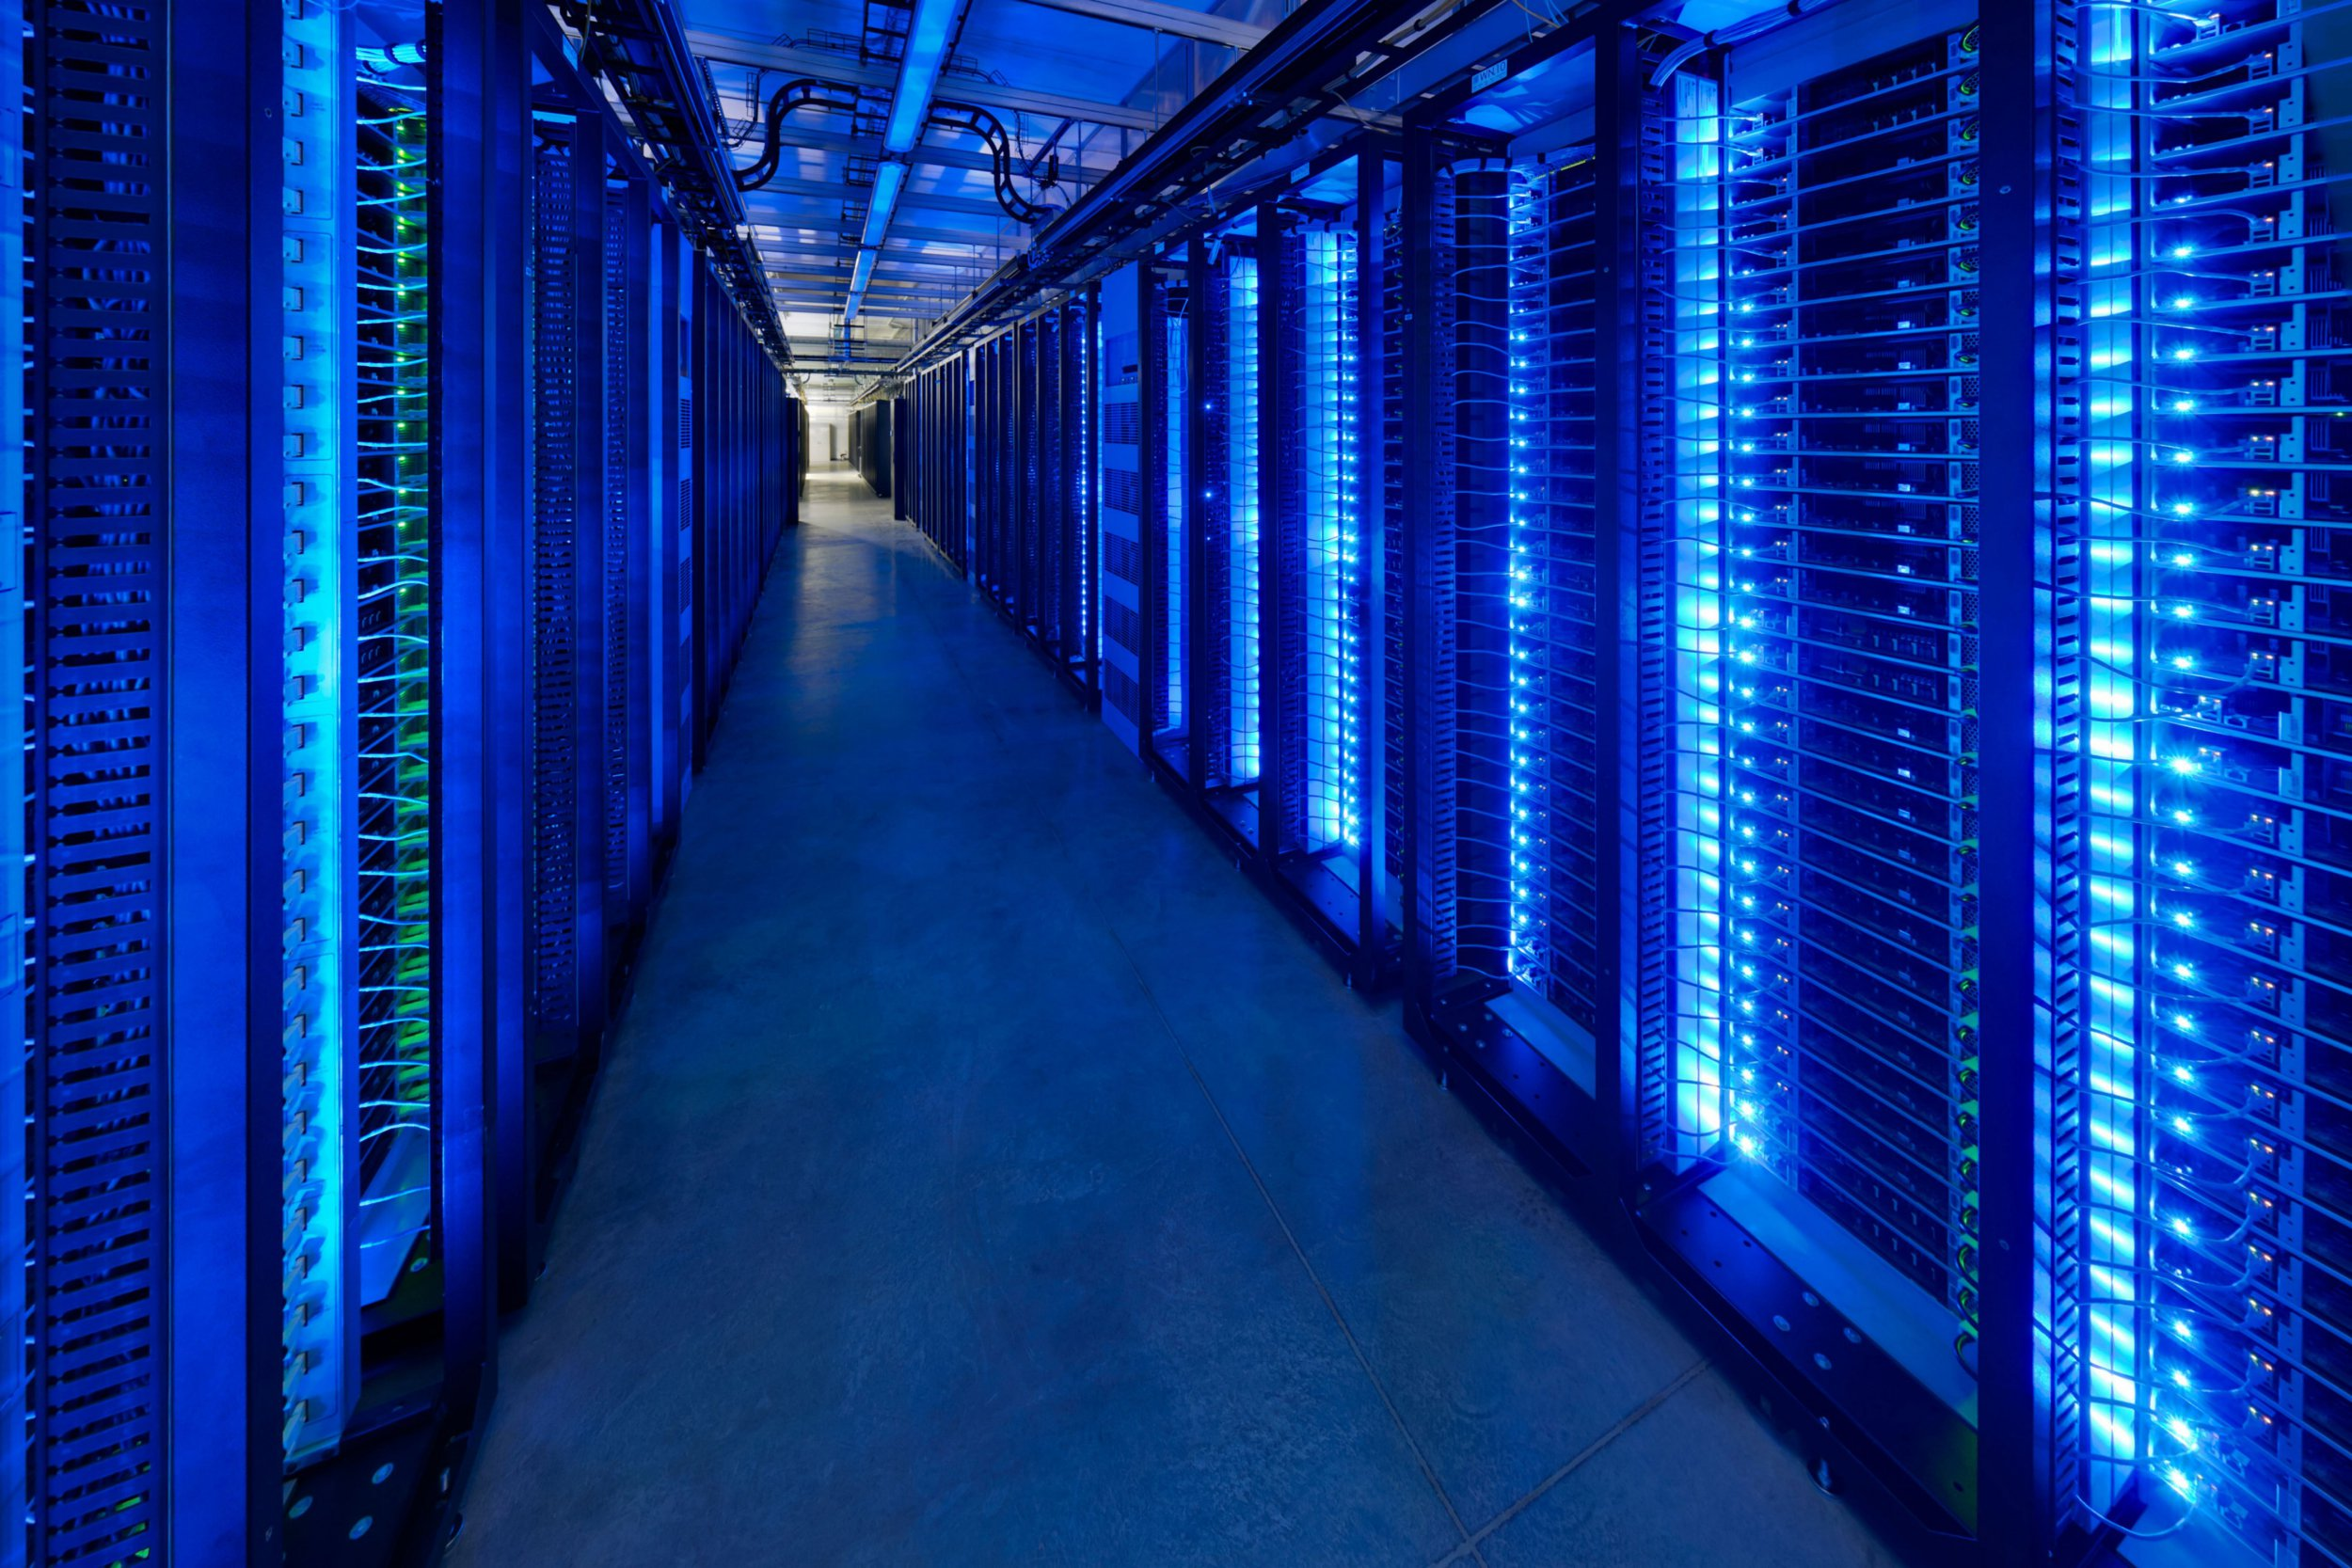 epa06616470 Undated handout image released by Facebook showing server racks at their data center in Prineville, Oregon, USA, 20 March 2018. A growing controversy in both the Great Britain and the US has raised questions about how Cambridge Analytica, a firm hired by US President Trump's 2016 election campaign, was able to gain access to private information on over more than 50 million Facebook users. EPA/FACEBOOK / HANDOUT HANDOUT EDITORIAL USE ONLY/NO SALES